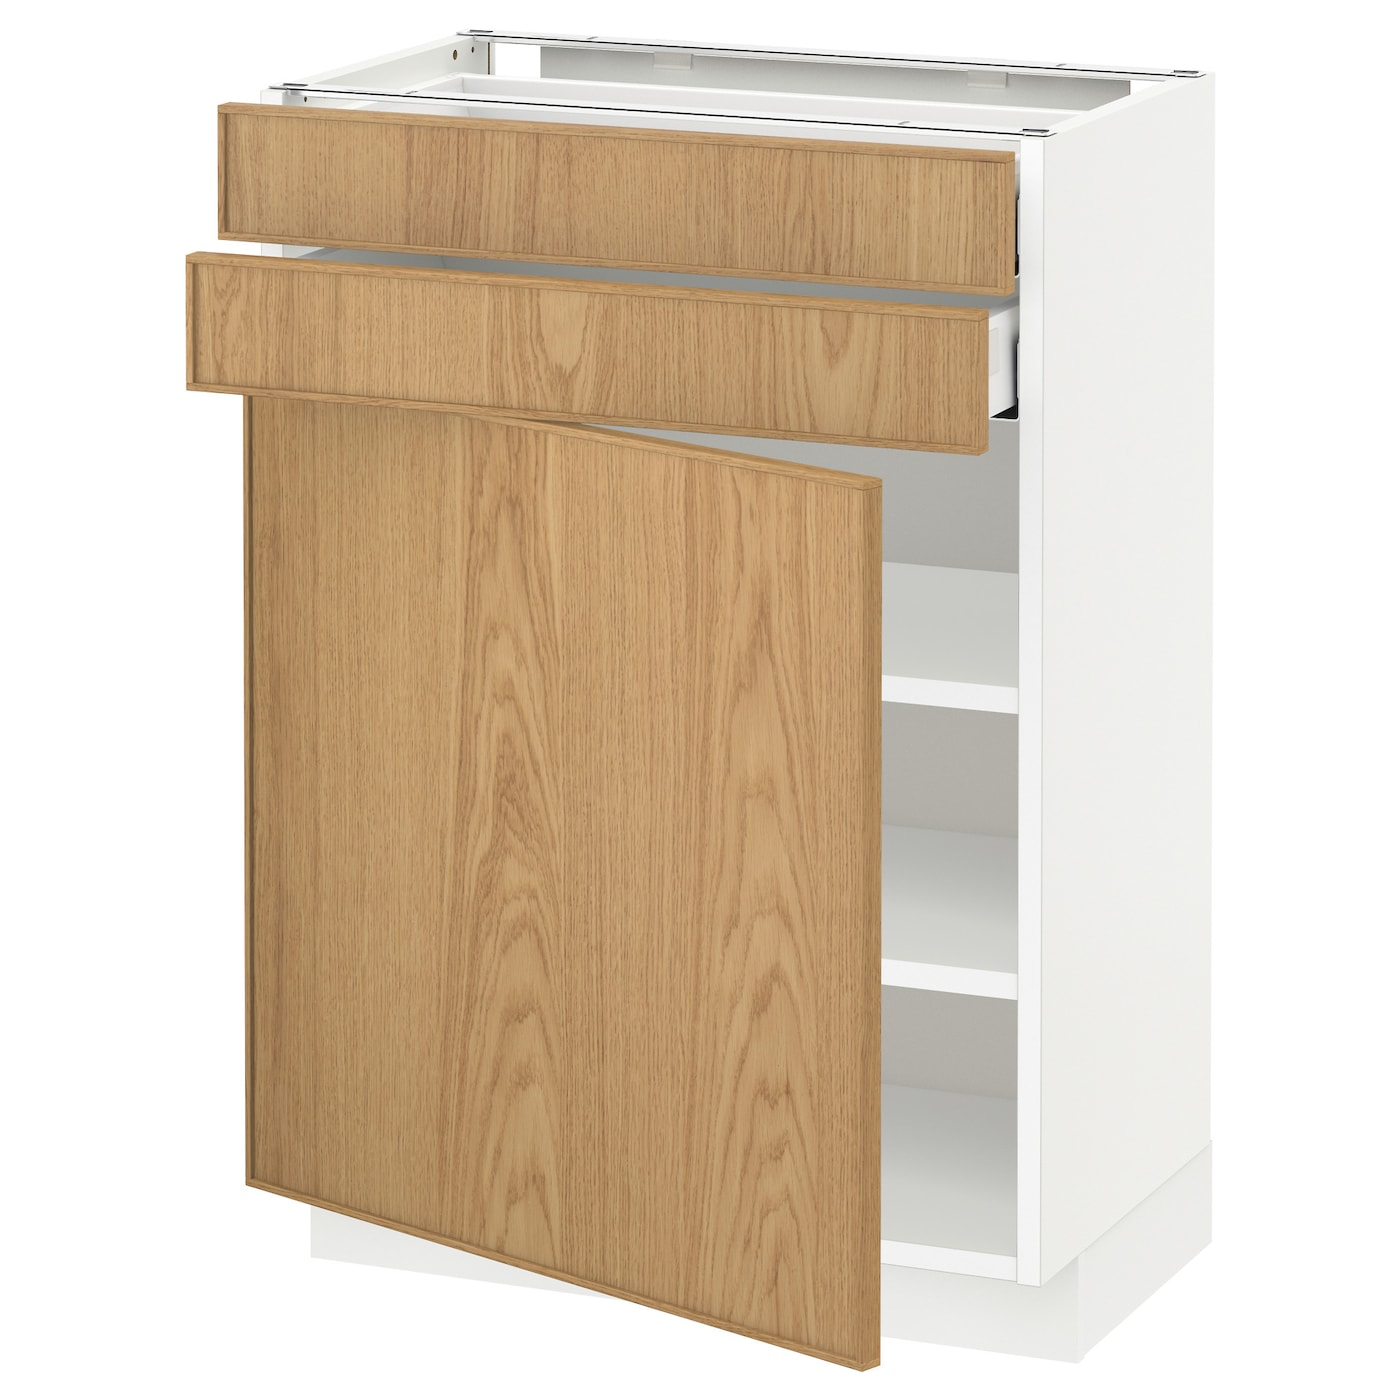 ikea oak kitchen cabinets metod maximera base cabinet w door 2 drawers white ekestad 4585